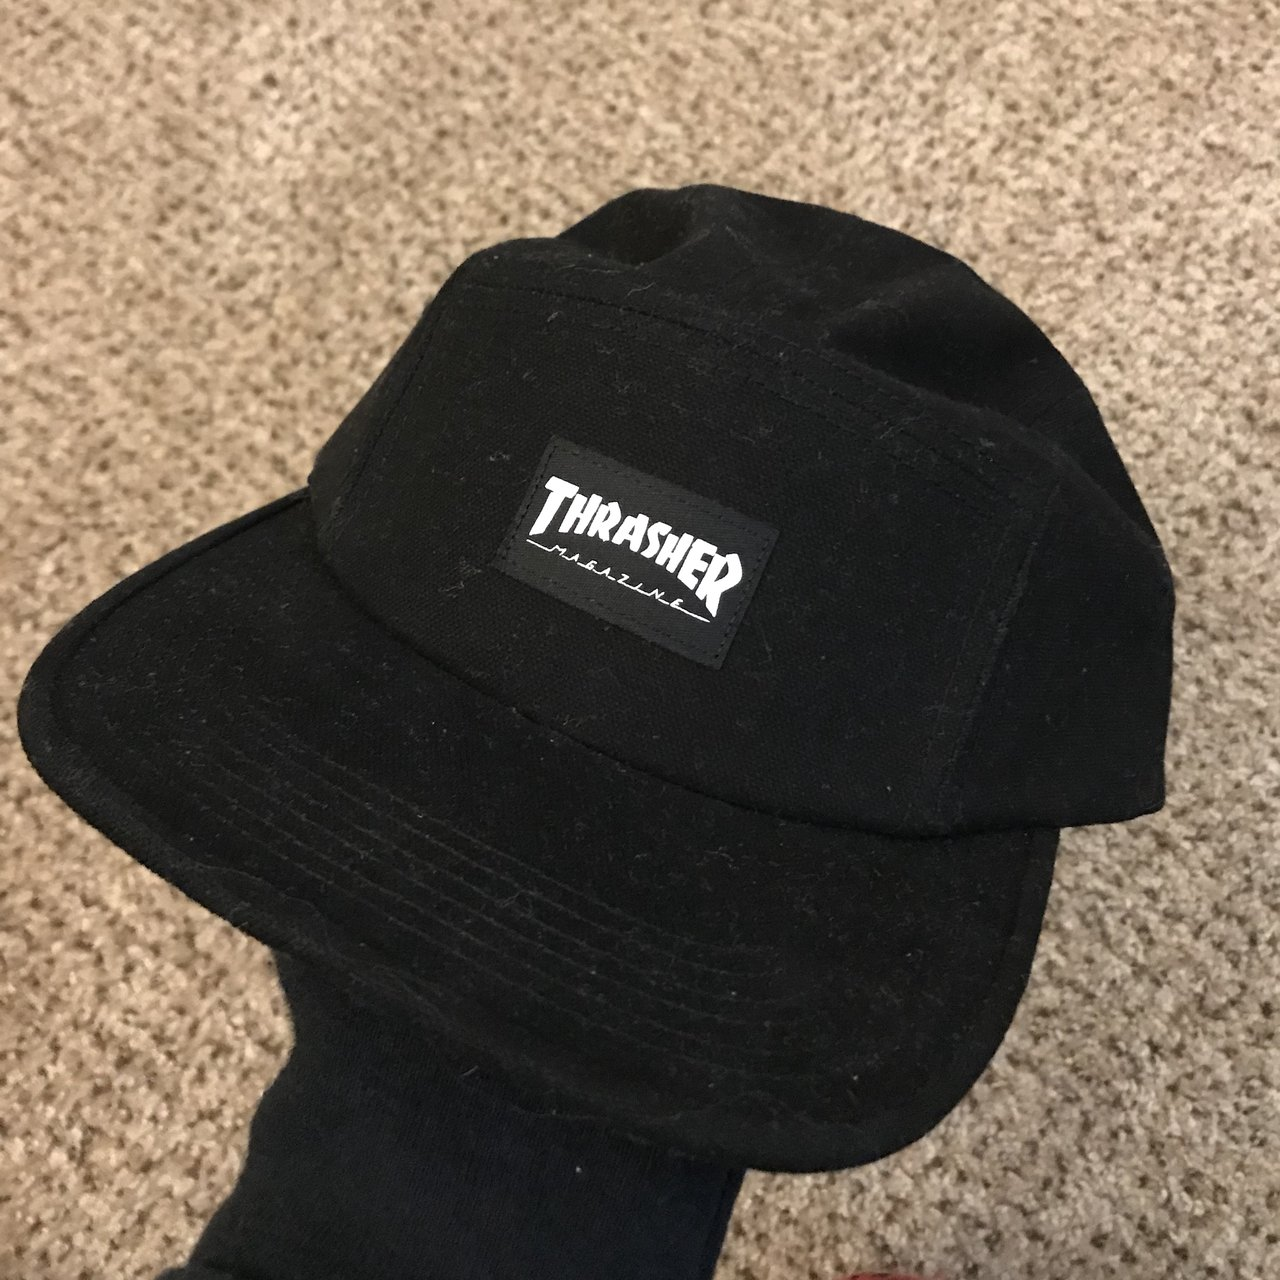 924e5d5aac3 New Thrahser five panel hat 🧢 Message me for any questions - Depop